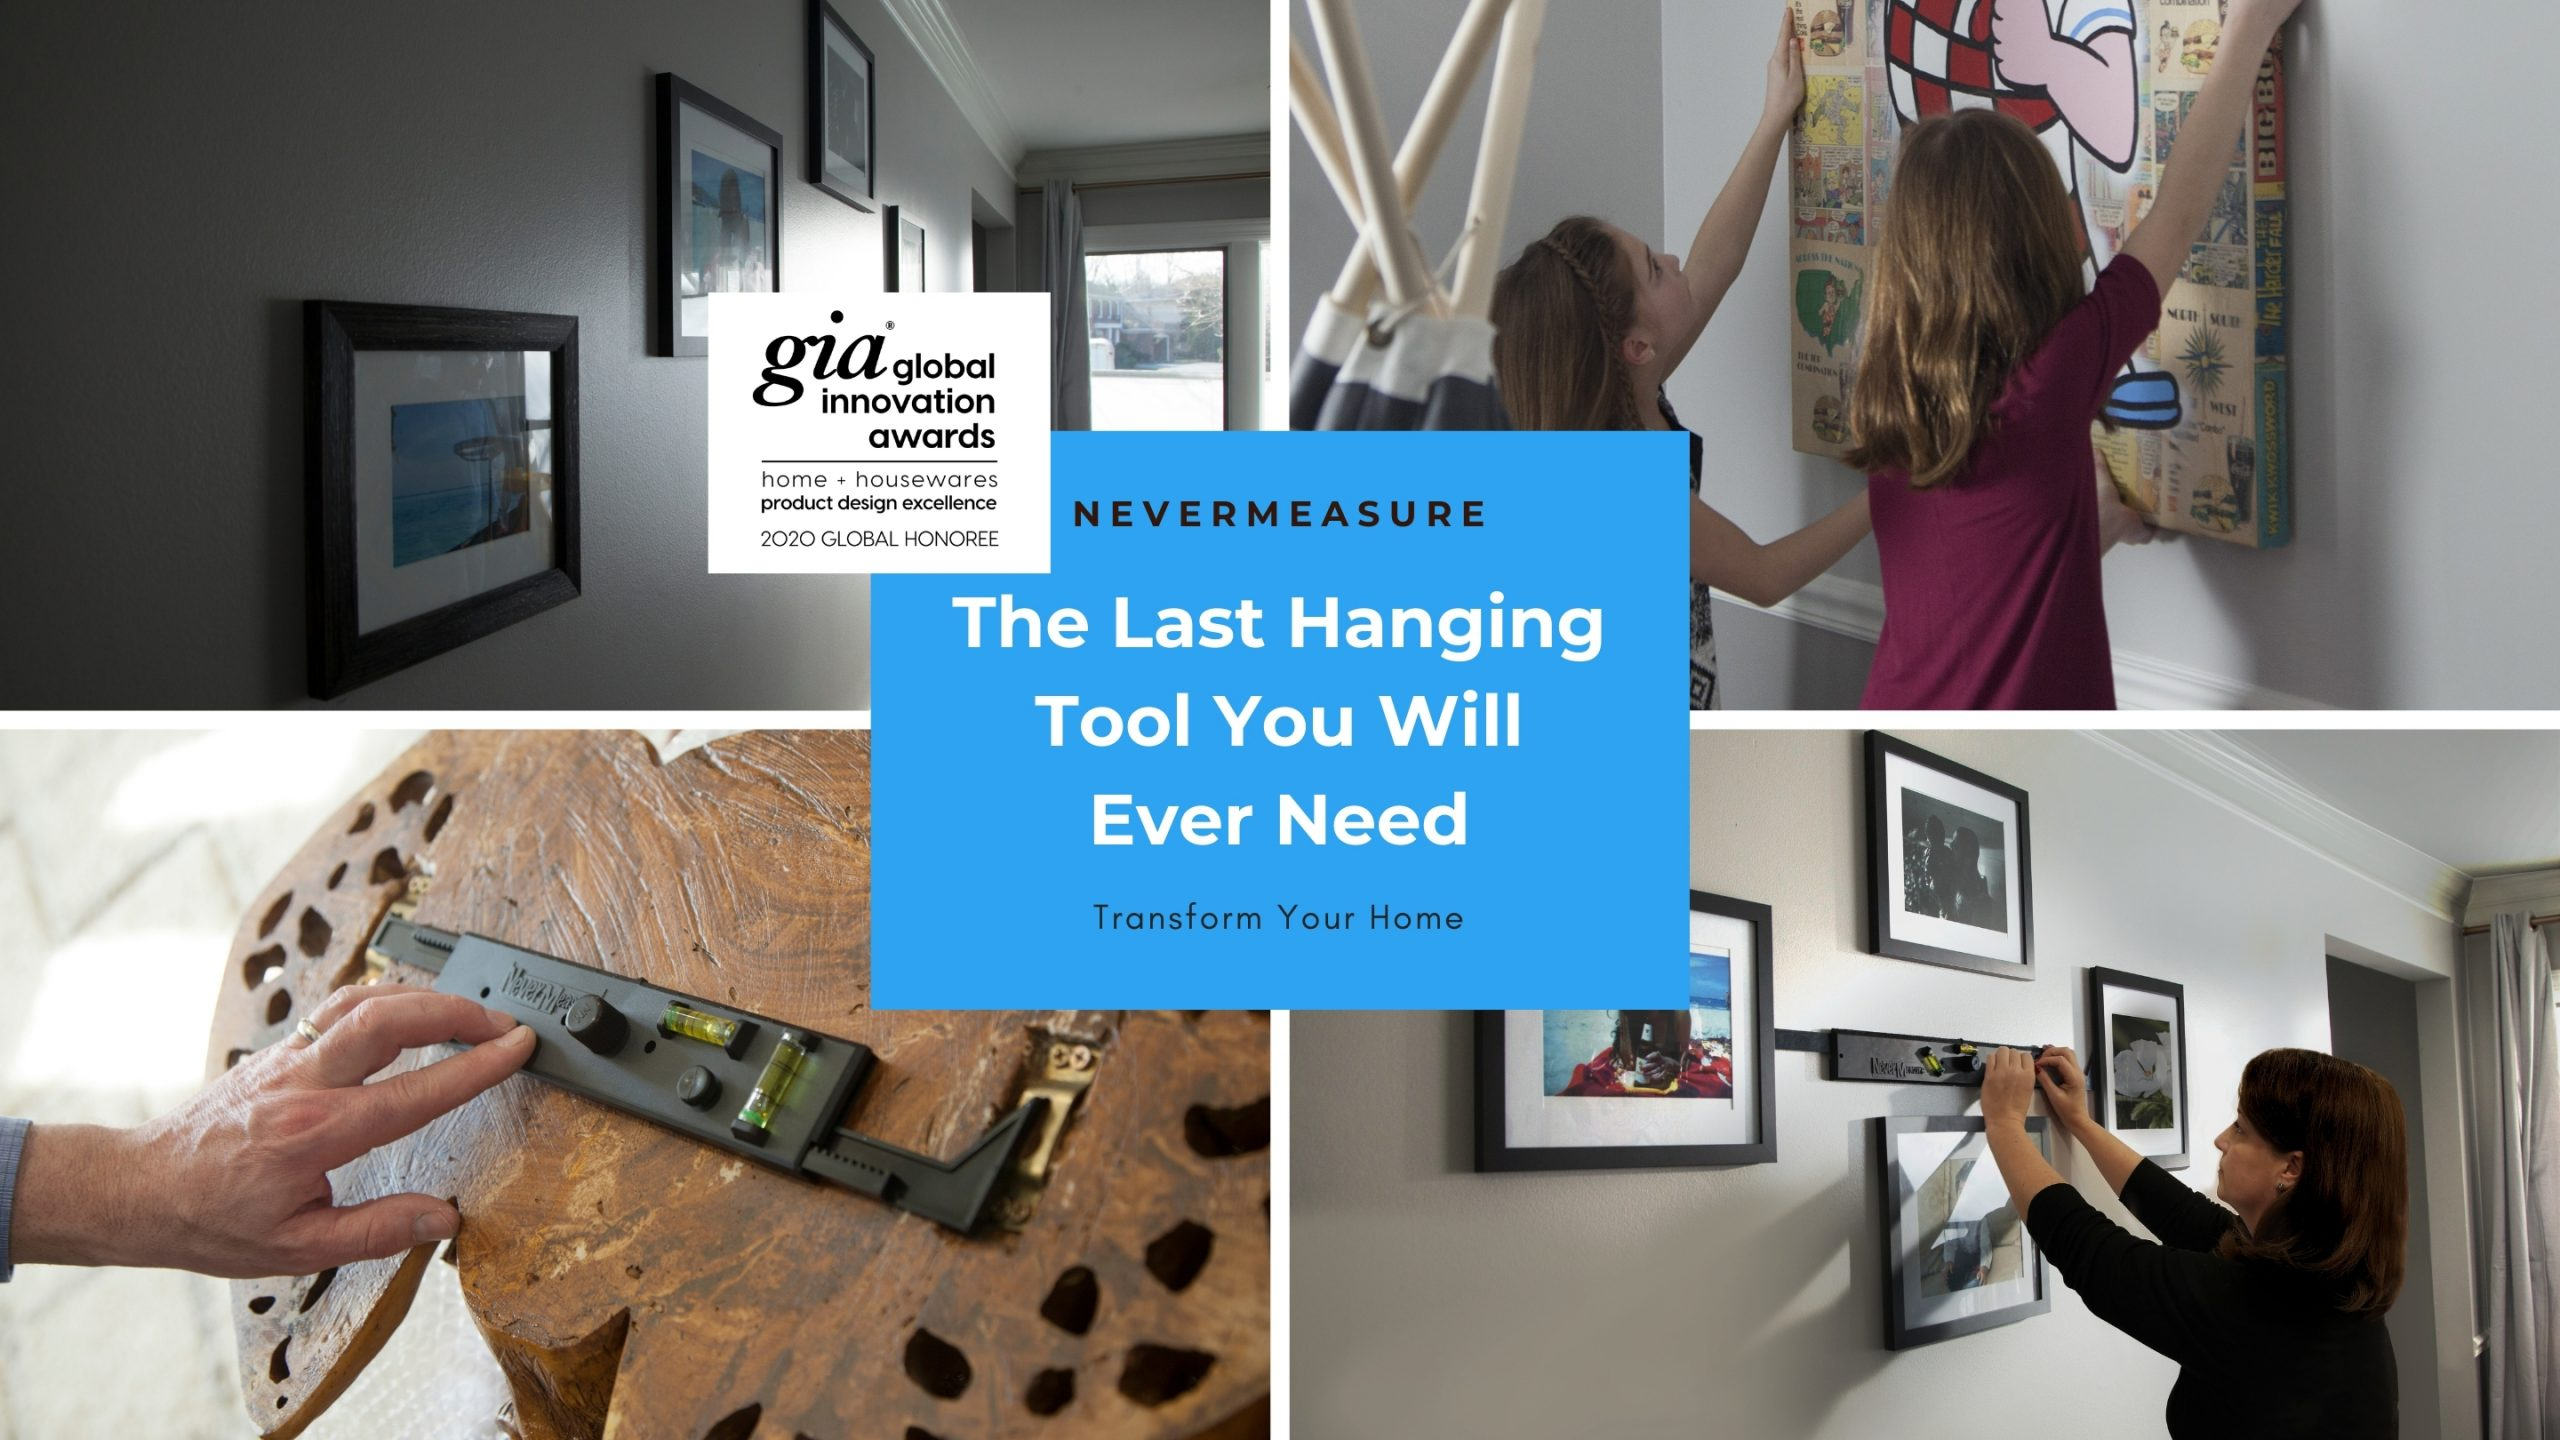 NeverMeasure | The Last Hanging Tool You Will Ever Need